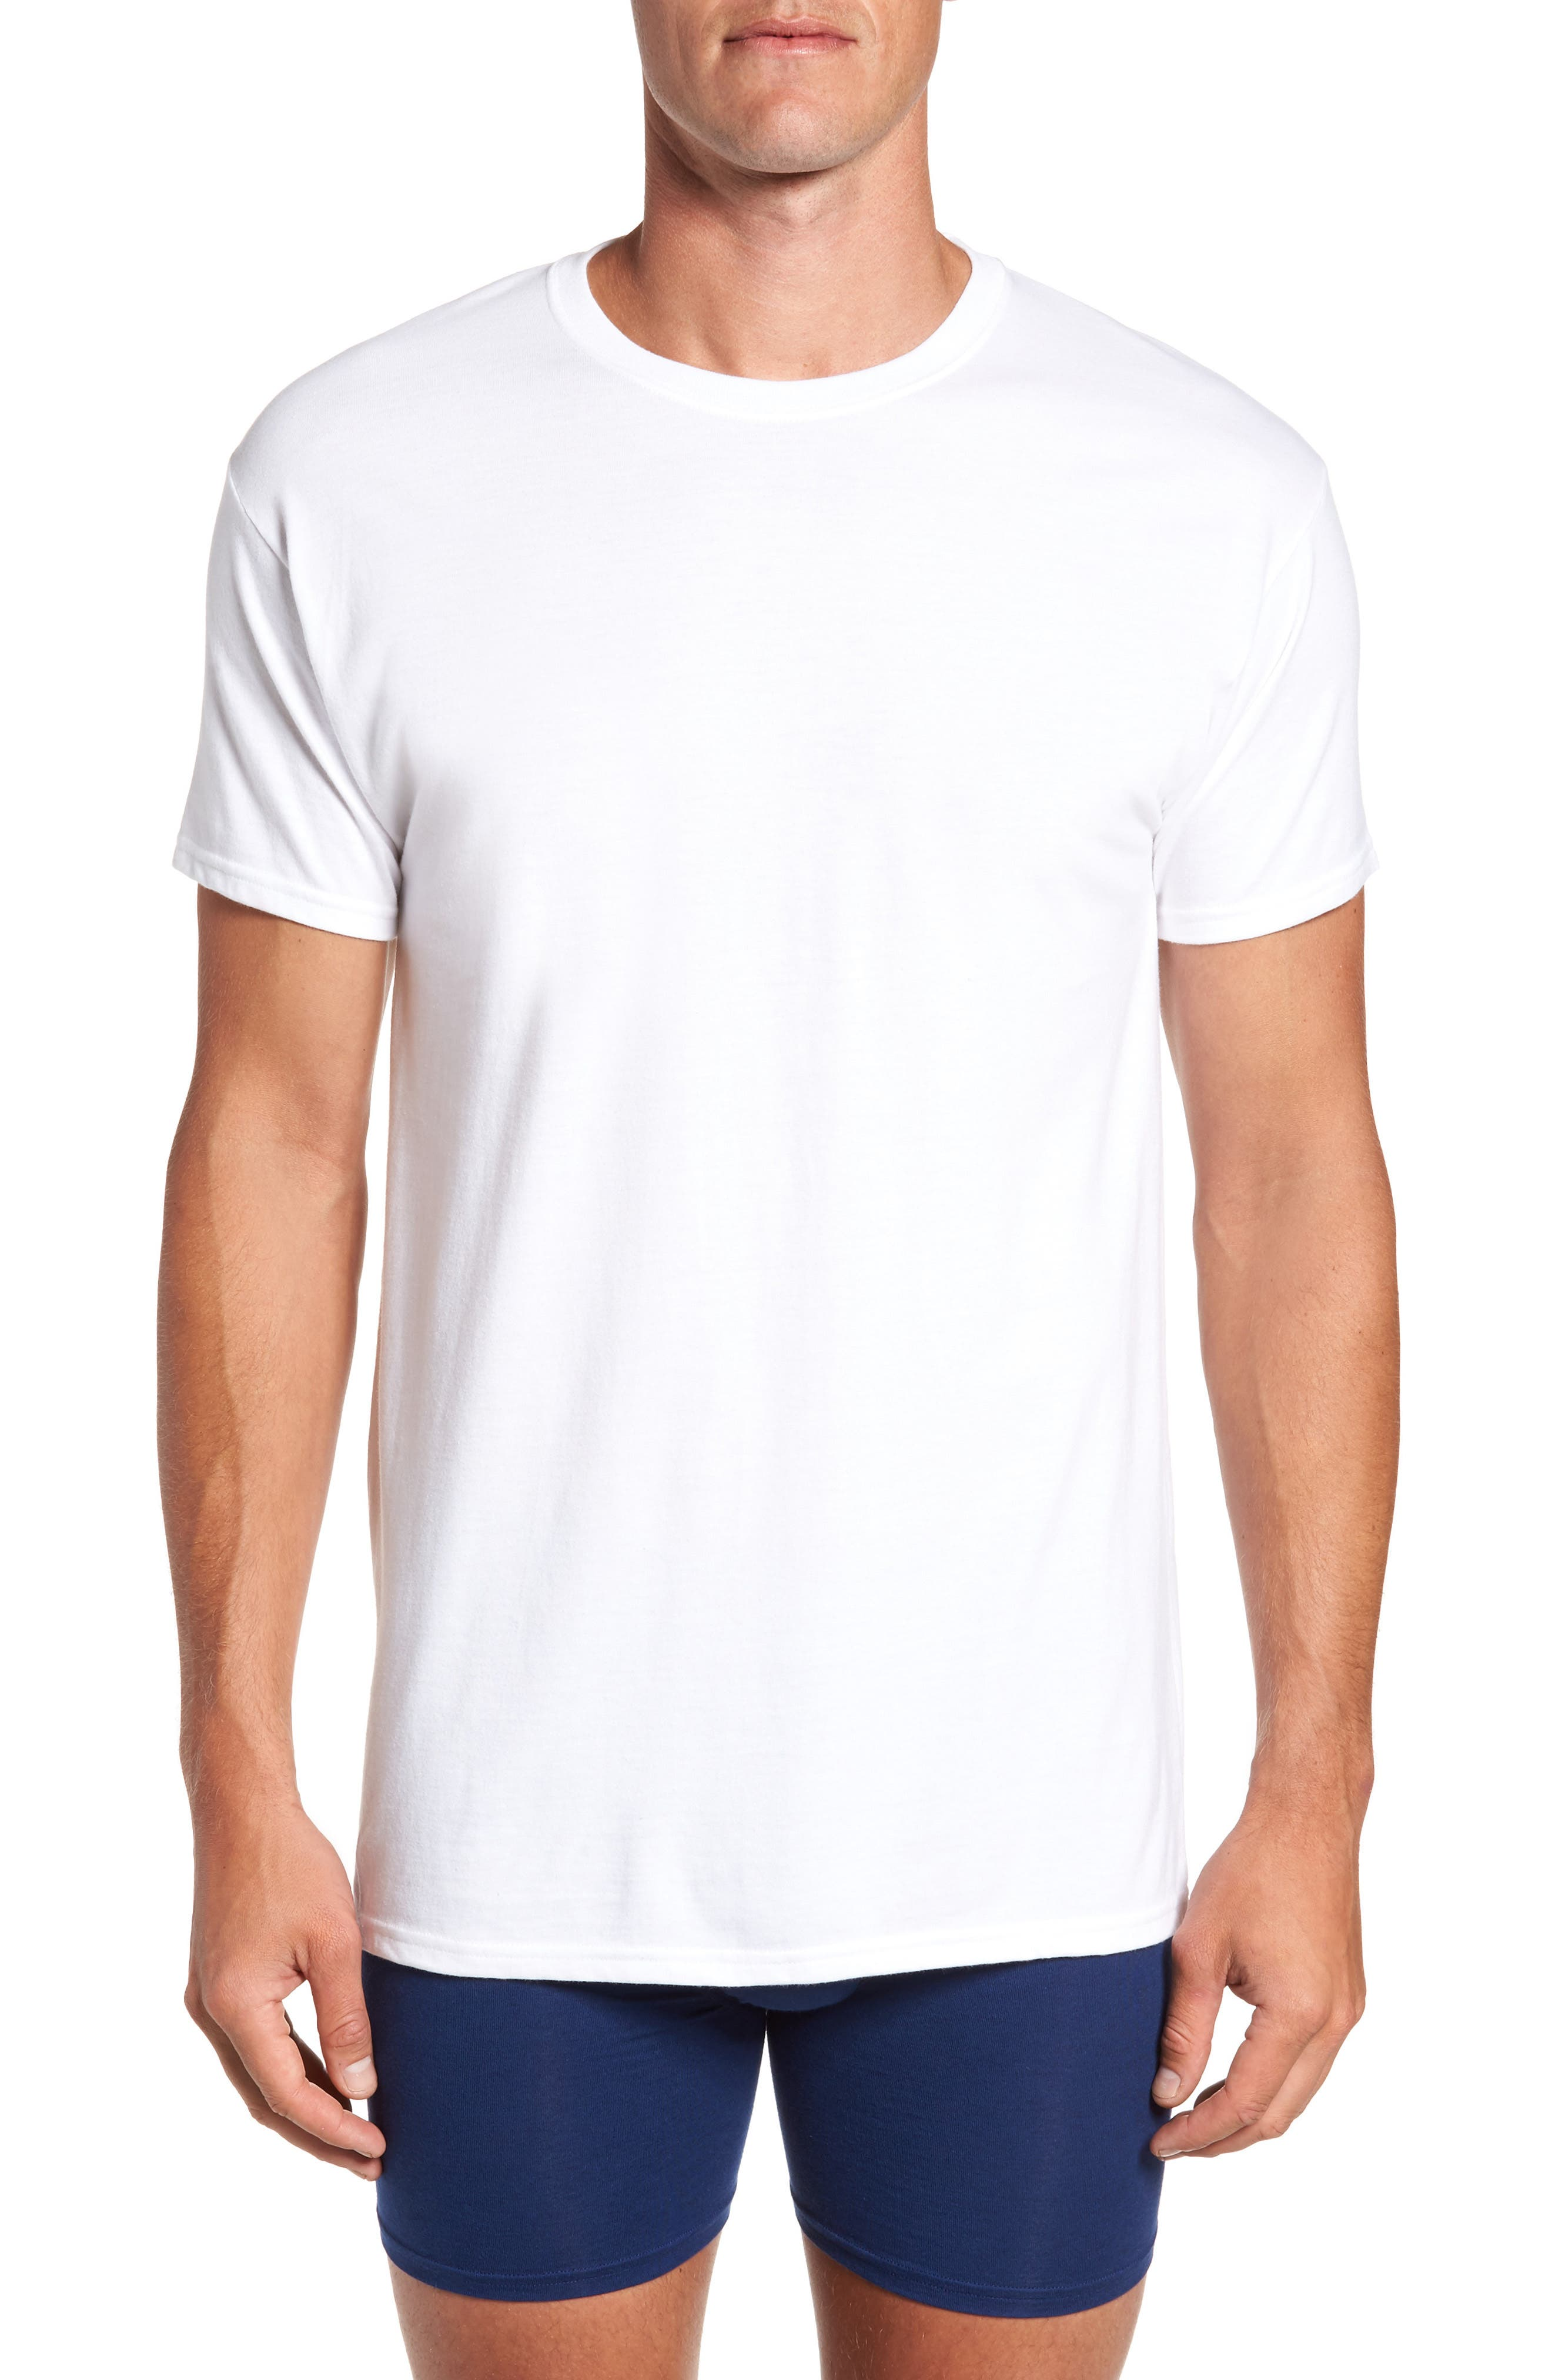 Alternate Image 2  - Hanes Luxury Essentials 3-Pack T-Shirt